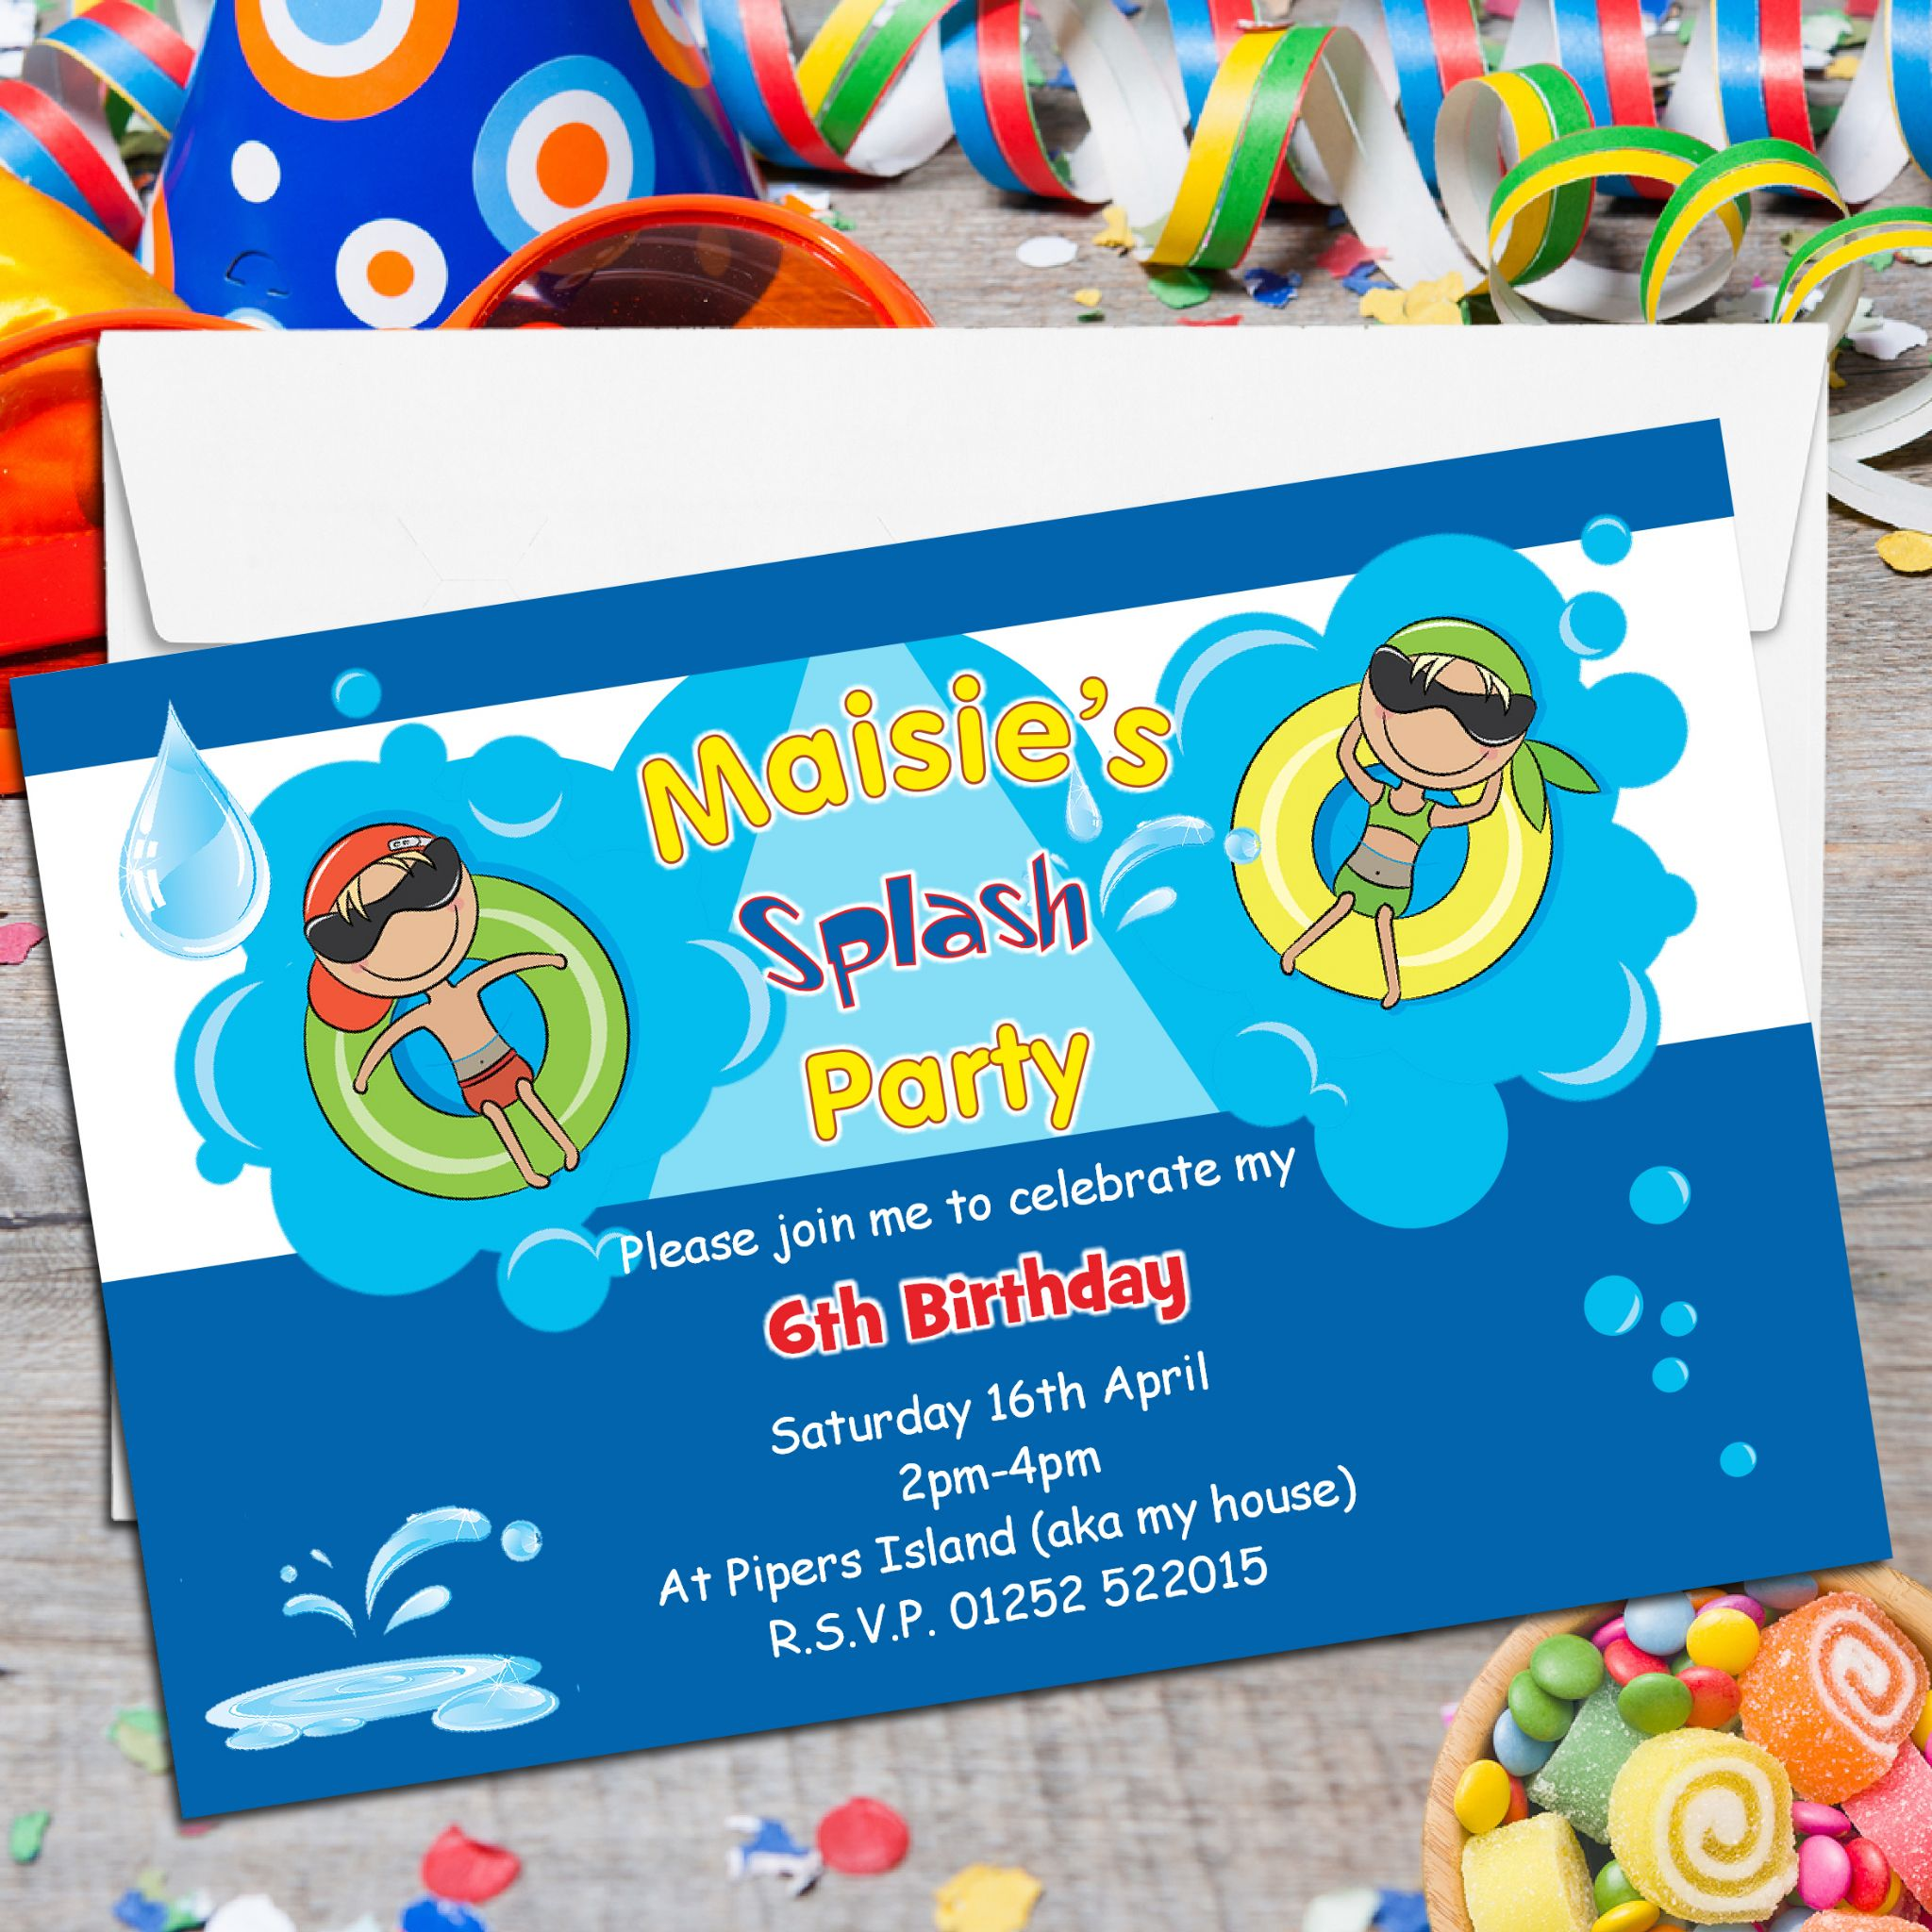 printed birthday party invitations ; 10-personalised-swimming-pool-birthday-party-invitations-n116-5522-p